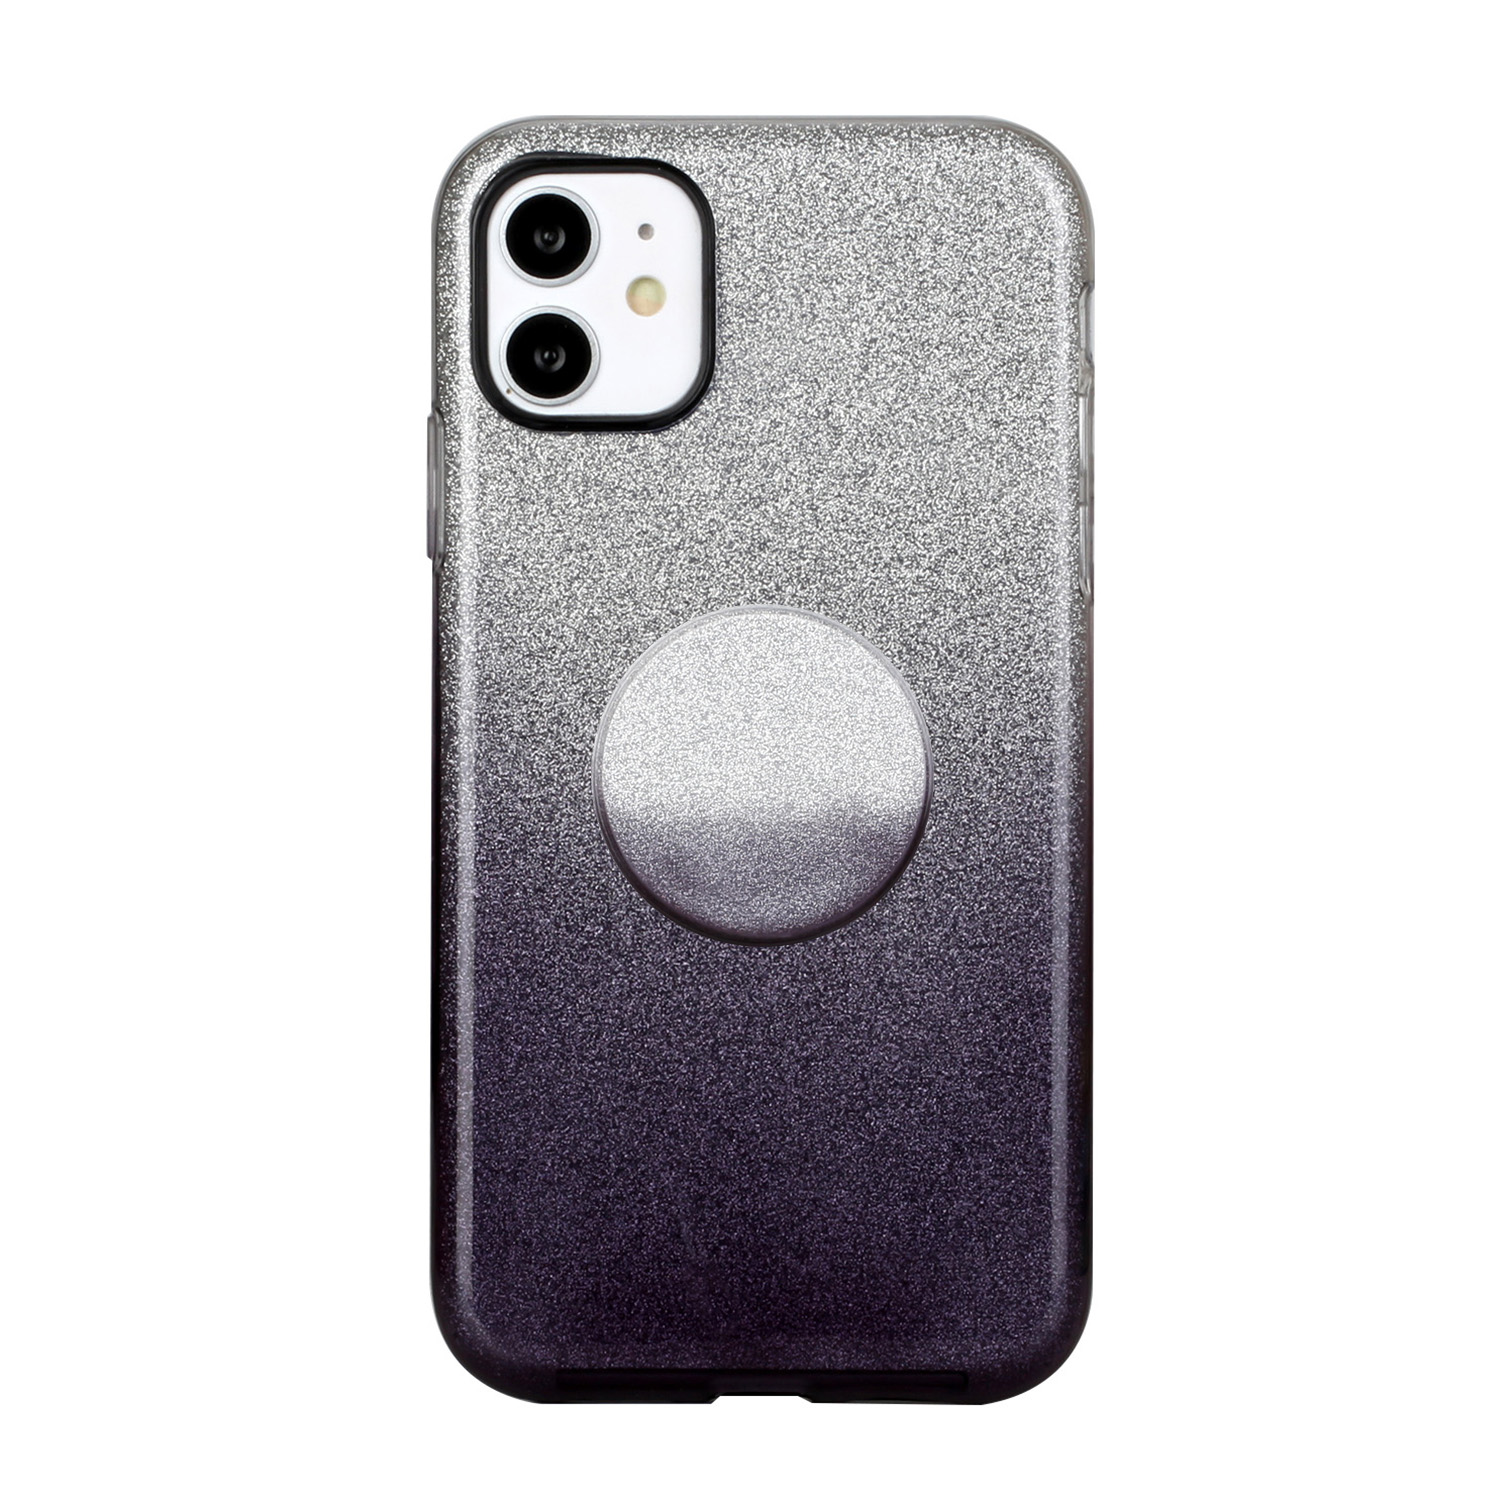 For iphone X/XS/XR/XS MAX/11/11 pro MAX Phone Case Gradient Color Glitter Powder Phone Cover with Airbag Bracket black